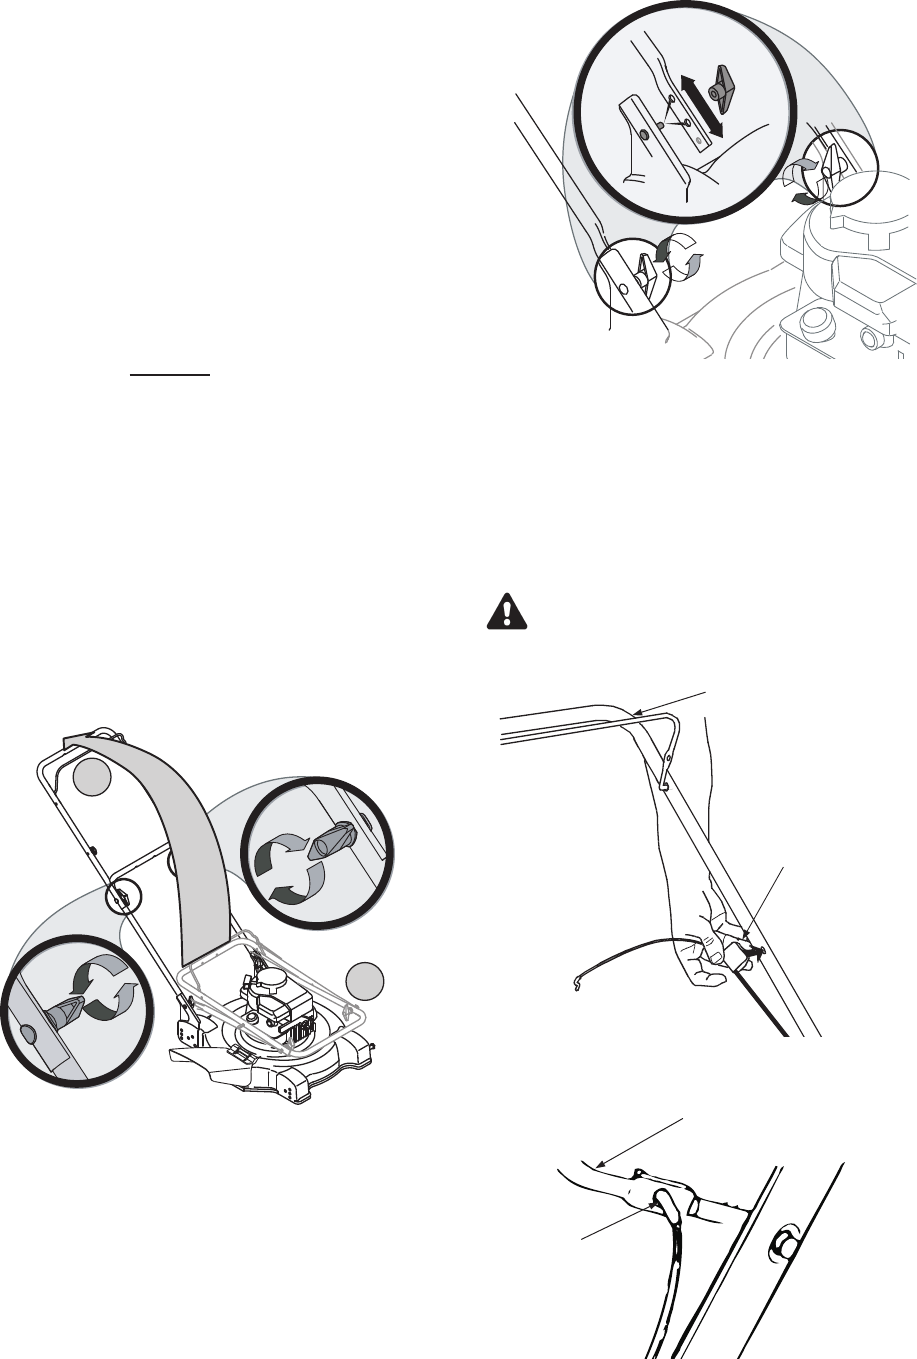 Page 7 of Yard Machines Lawn Mower 070 Series User Guide